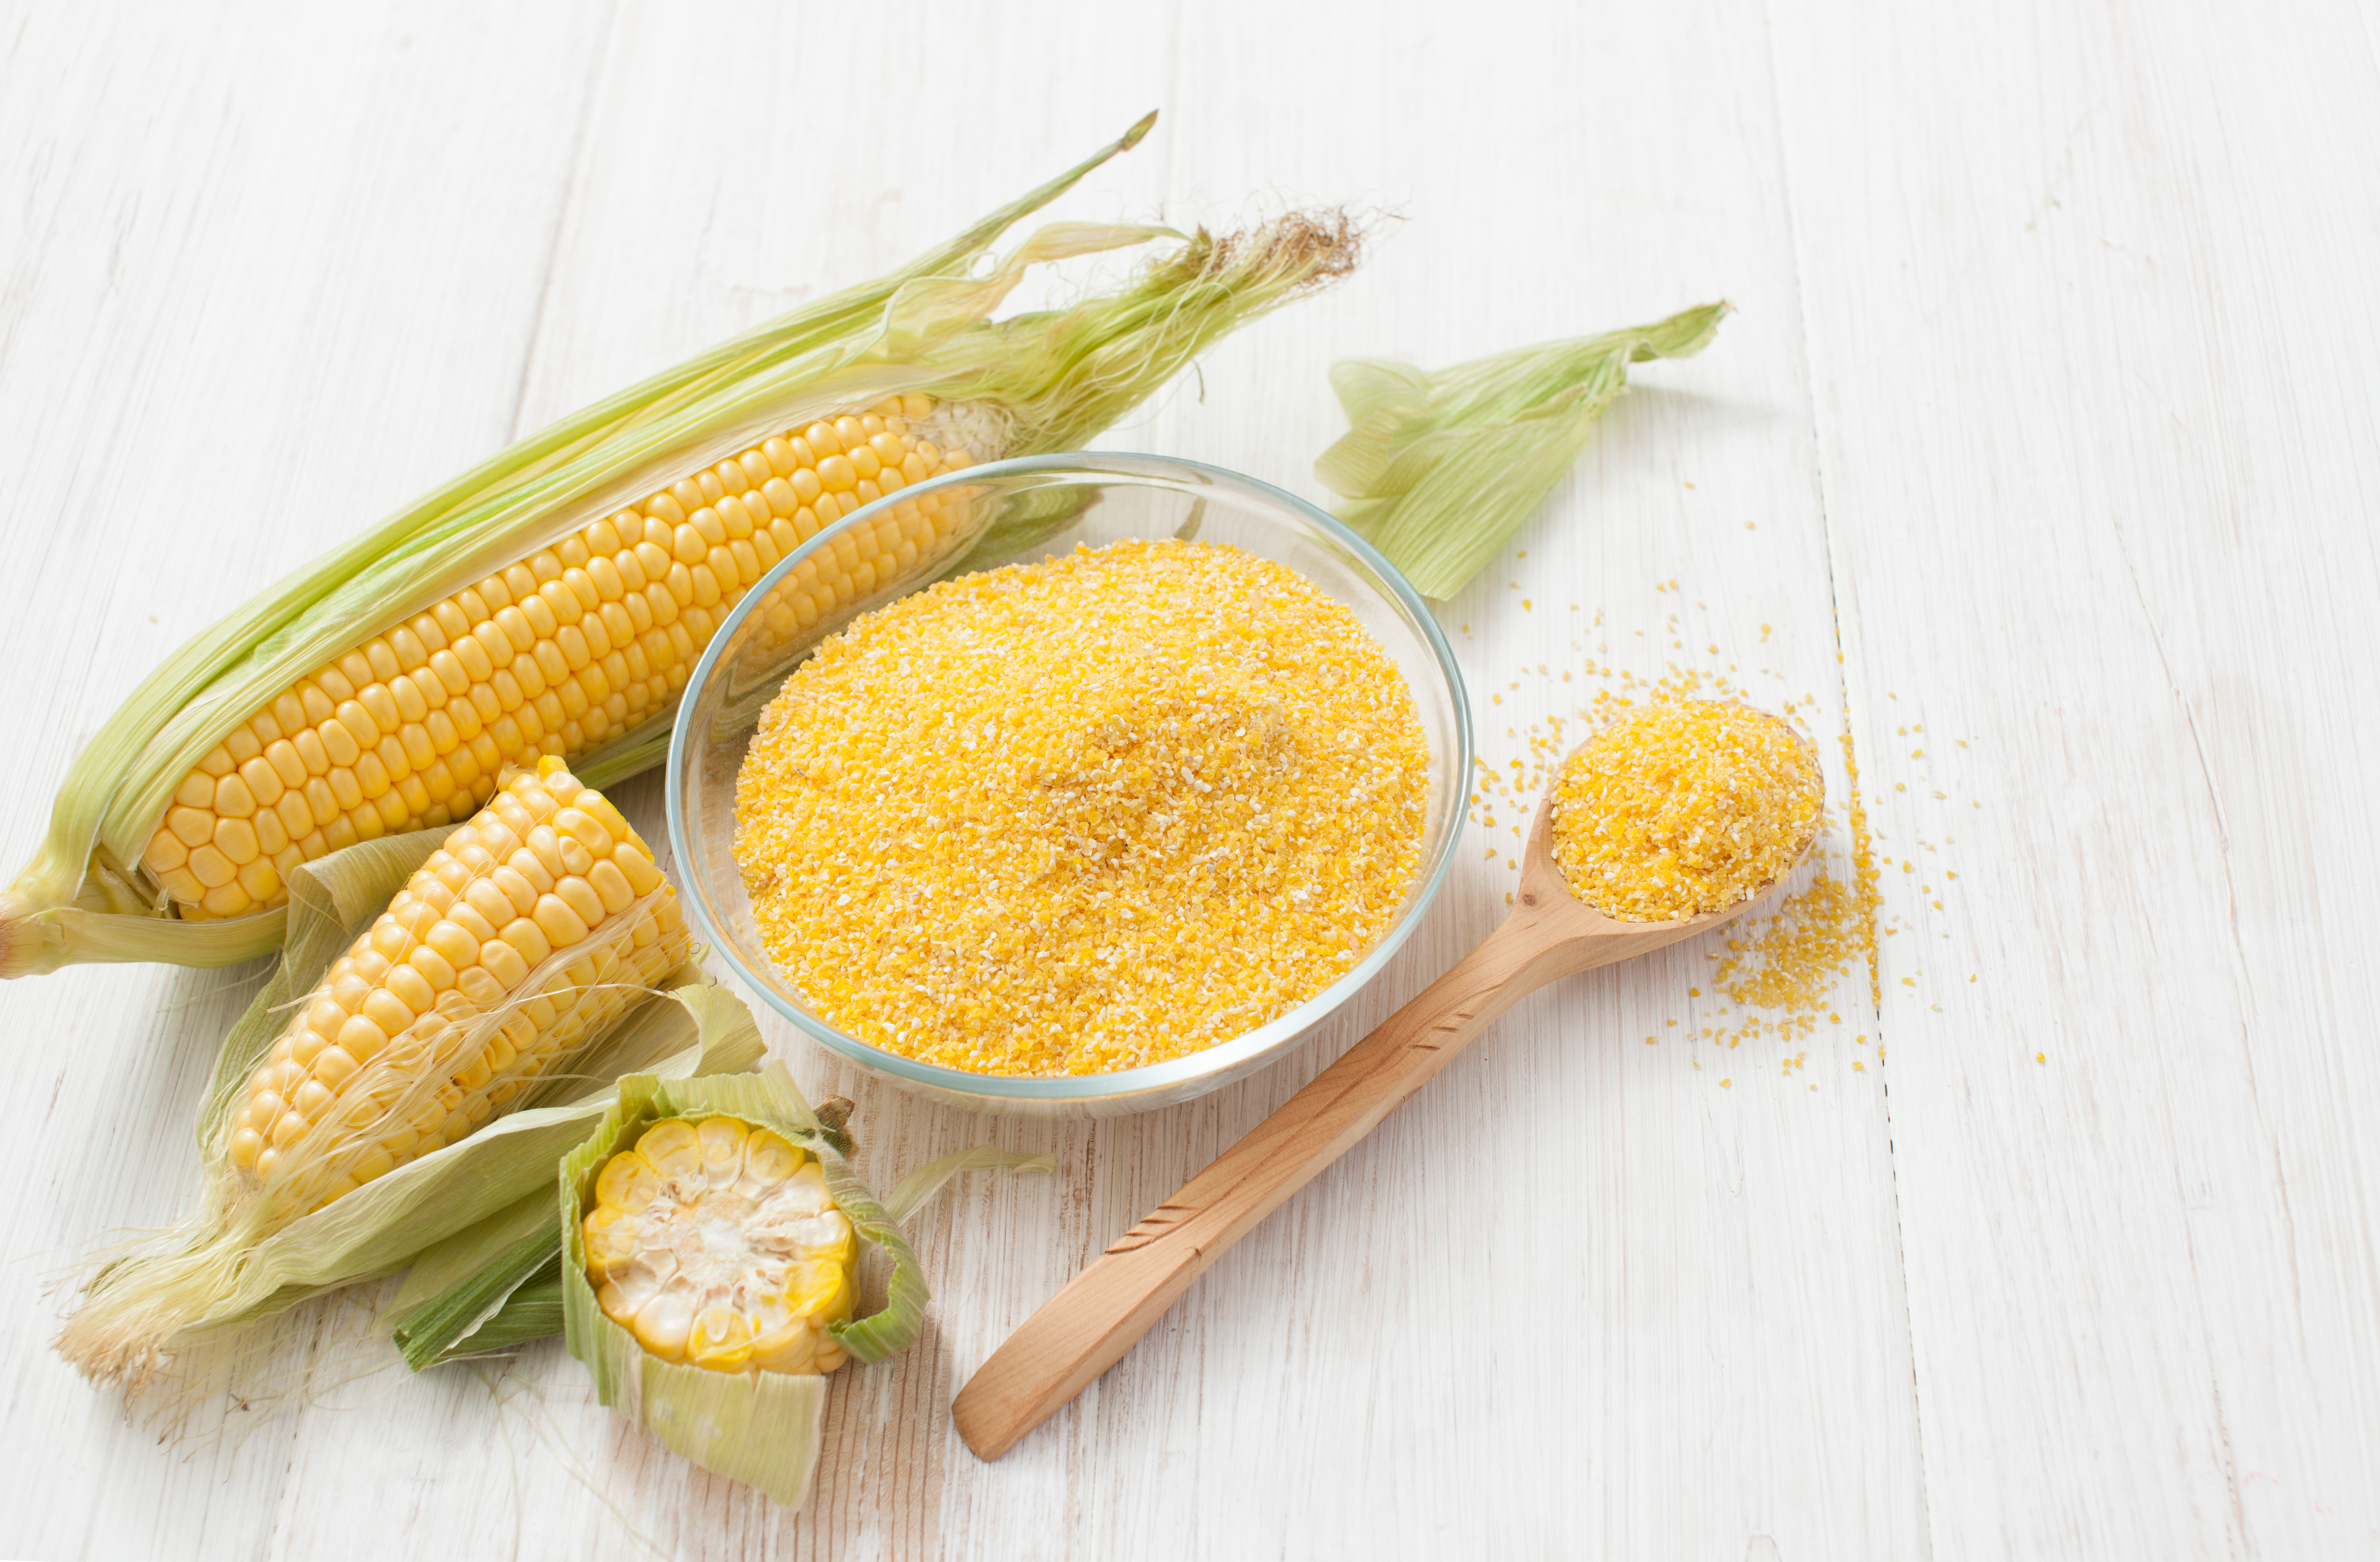 What Are the Benefits of Eating Corn Meal? | Healthy Eating | SF Gate